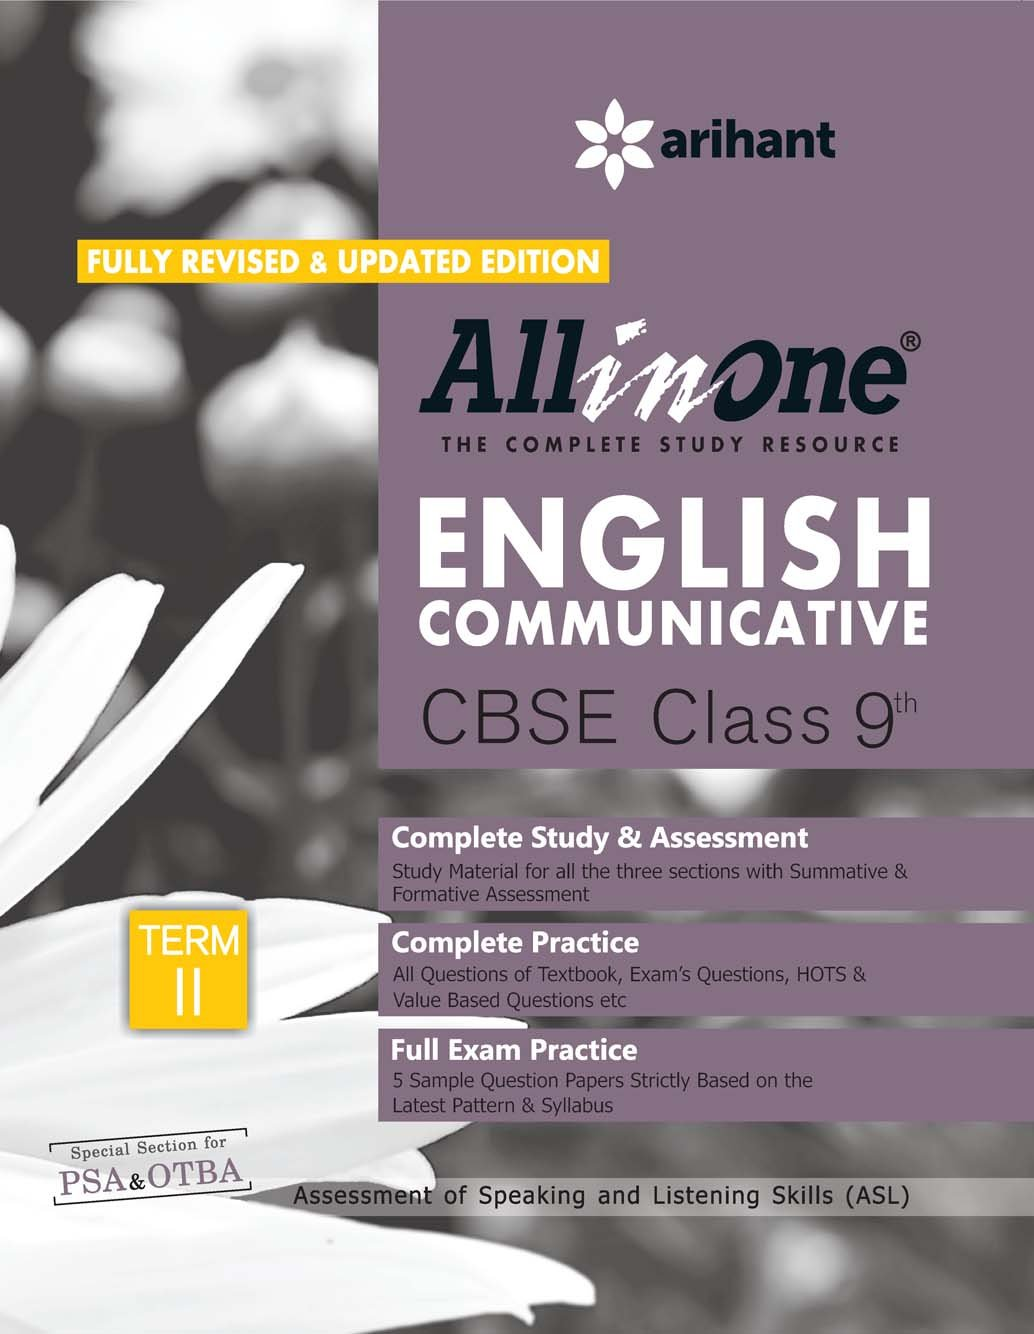 All in One English Communicative CBSE Class 9th Term-II Old